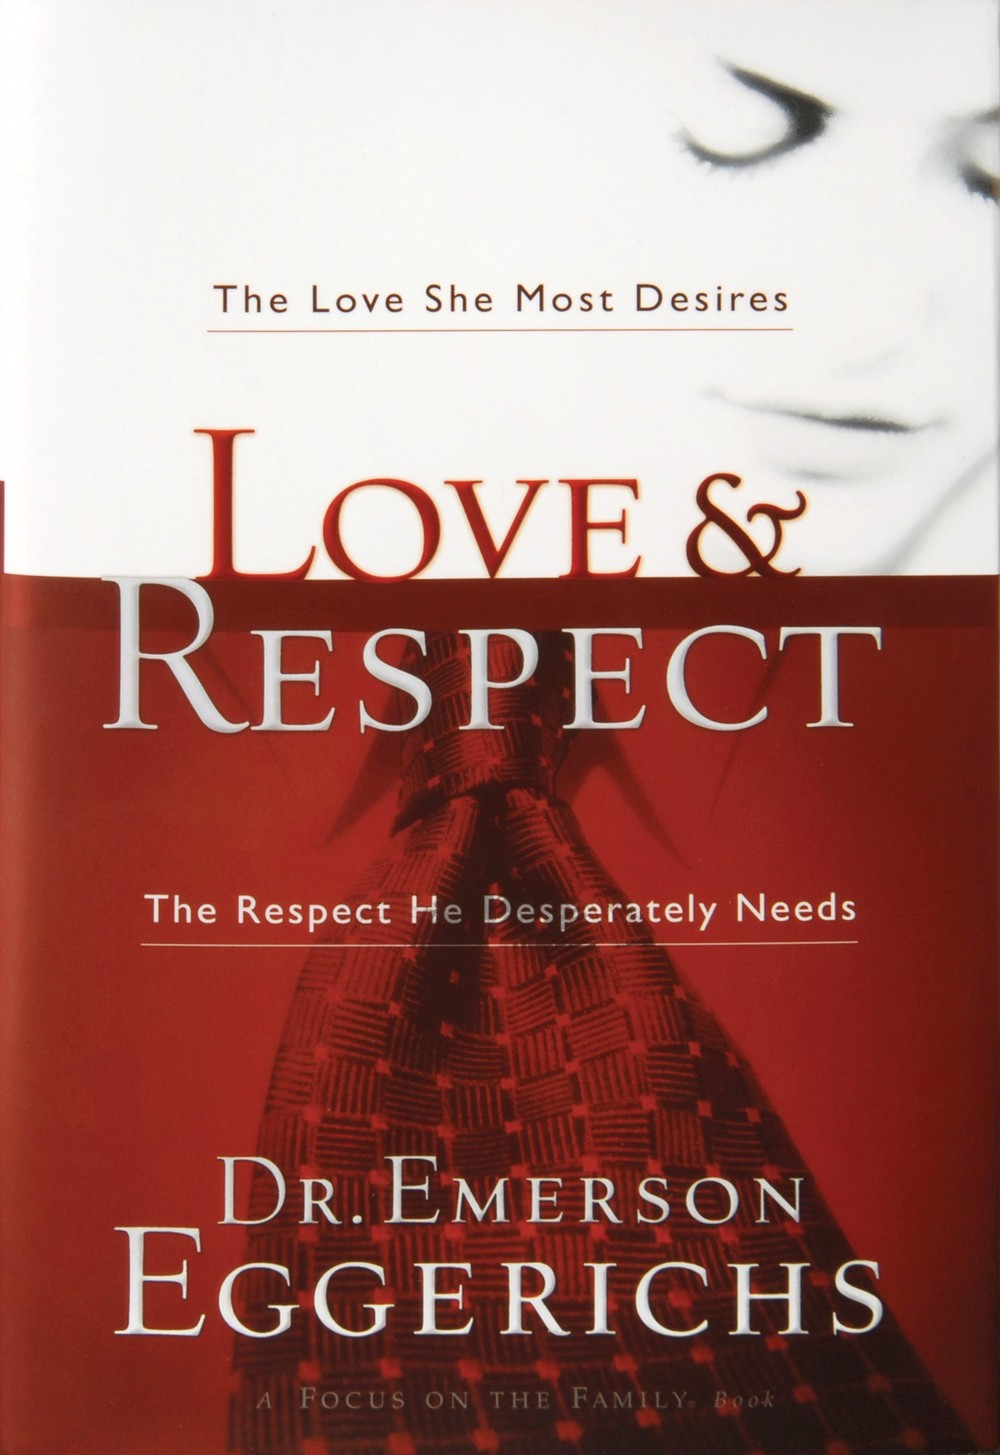 An insightful book based on the Biblical principal that men are instructed to love their wives and wives are to respect their husbands. A must read for every couple!